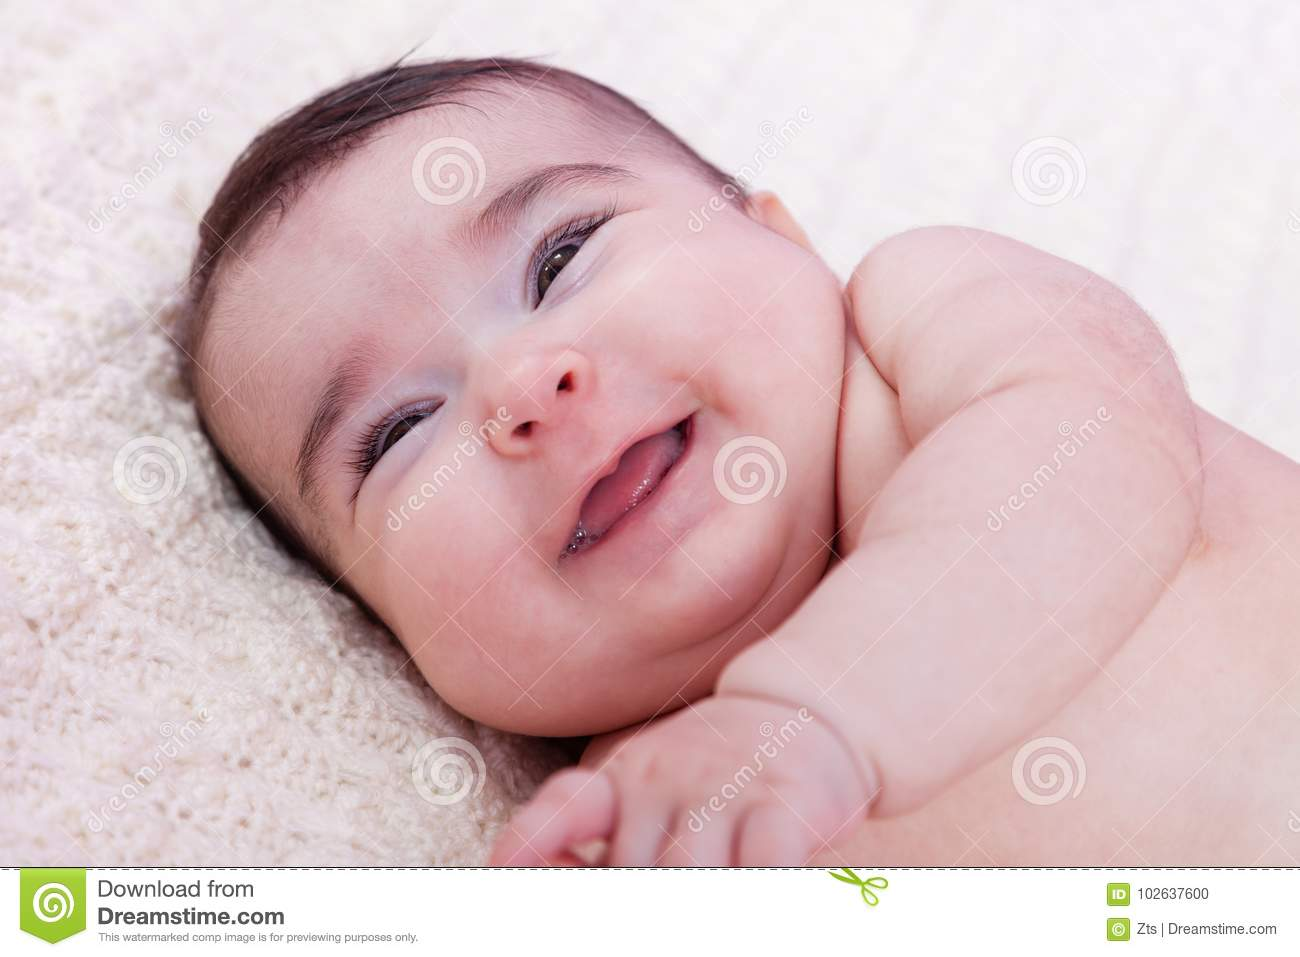 cute, pretty, happy, chubby and smiling baby girl portrait, laughing